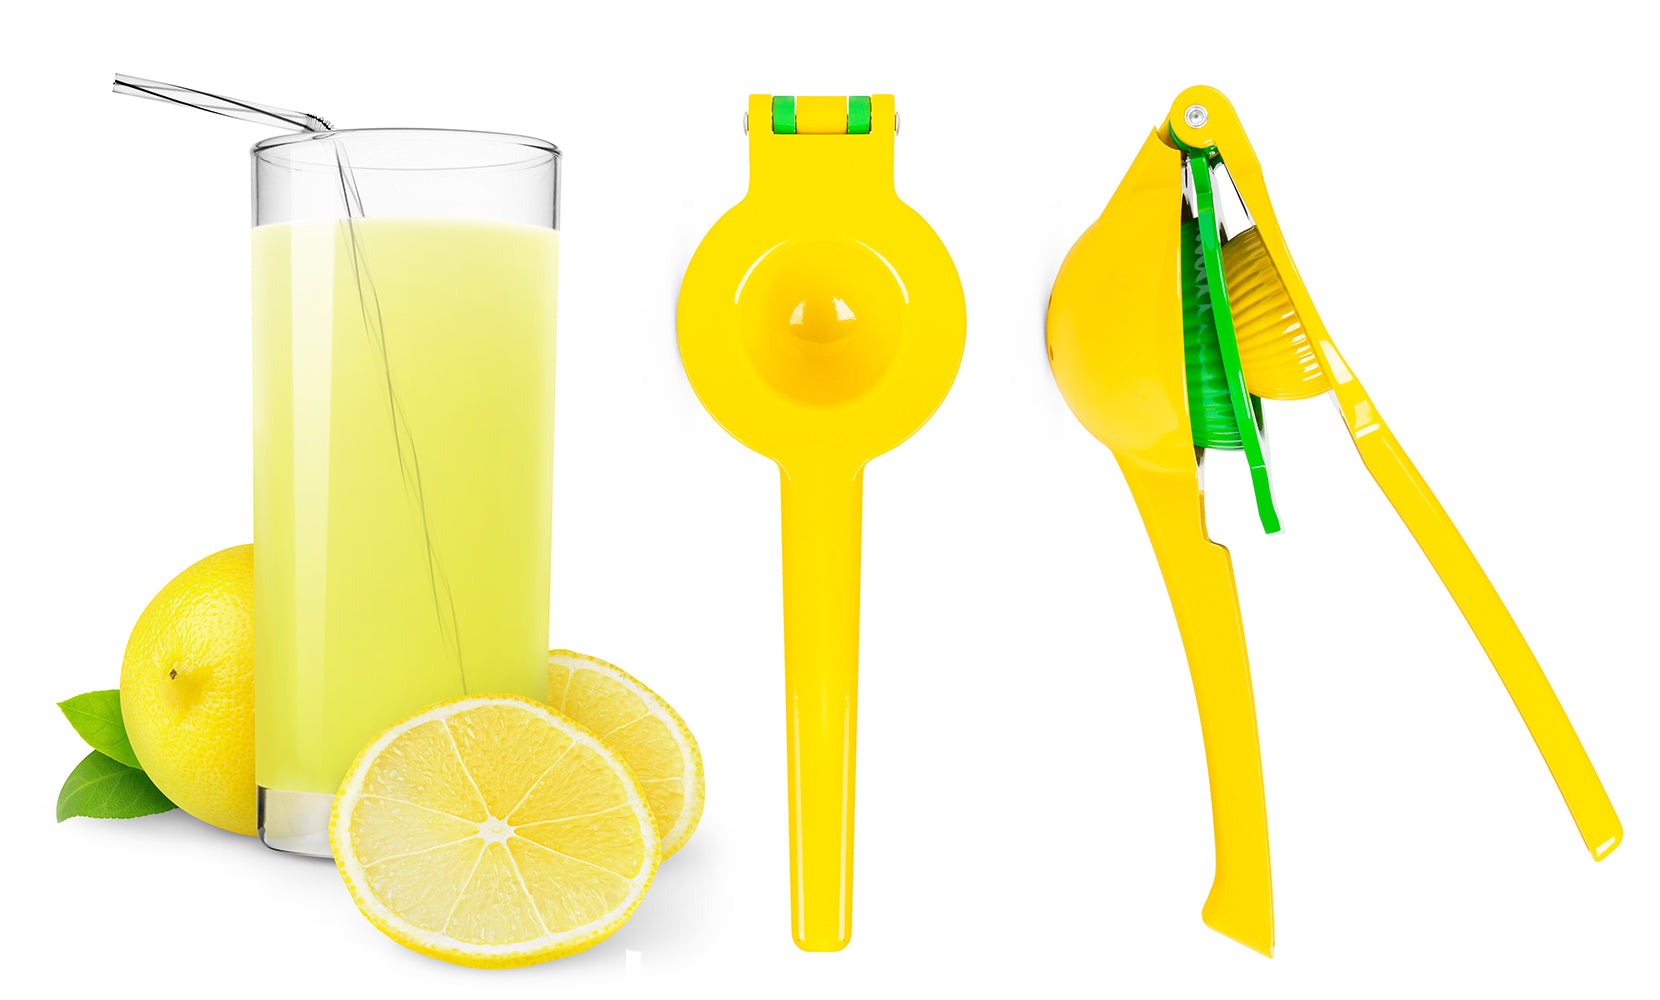 Easy-To-Use Hand Press Lemon Squeezer and Juicer Tool